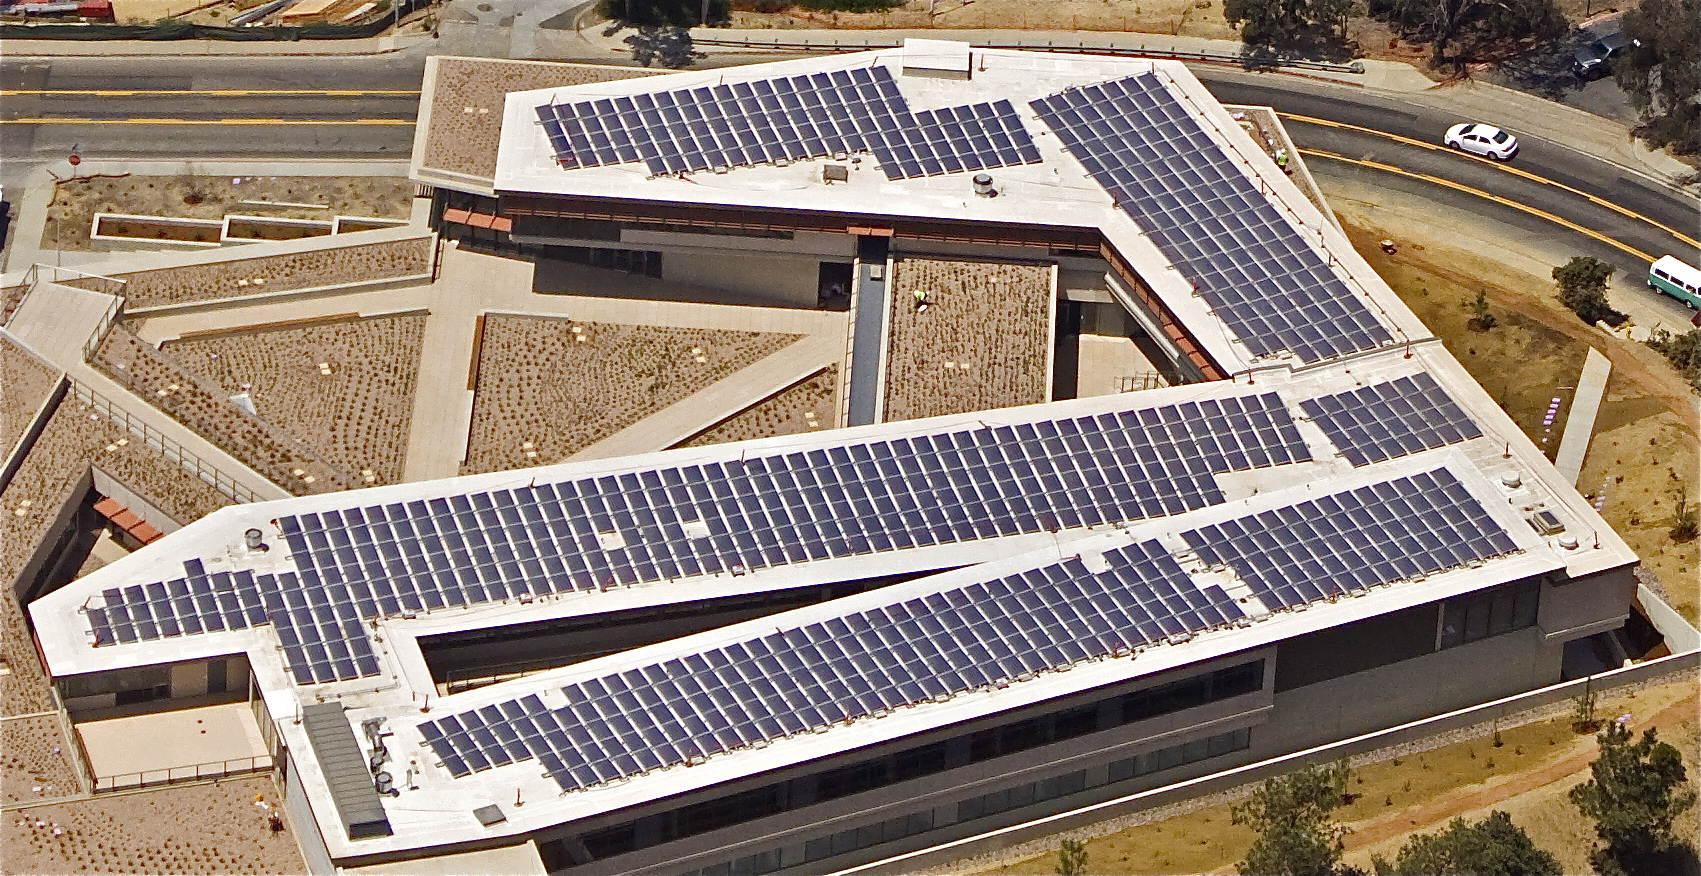 BUR was able to provide a reflective, energy-efficient, compliant roofing system at the National Oceanic and Atmospheric Administration (NOAA) Building in La Jolla, California.